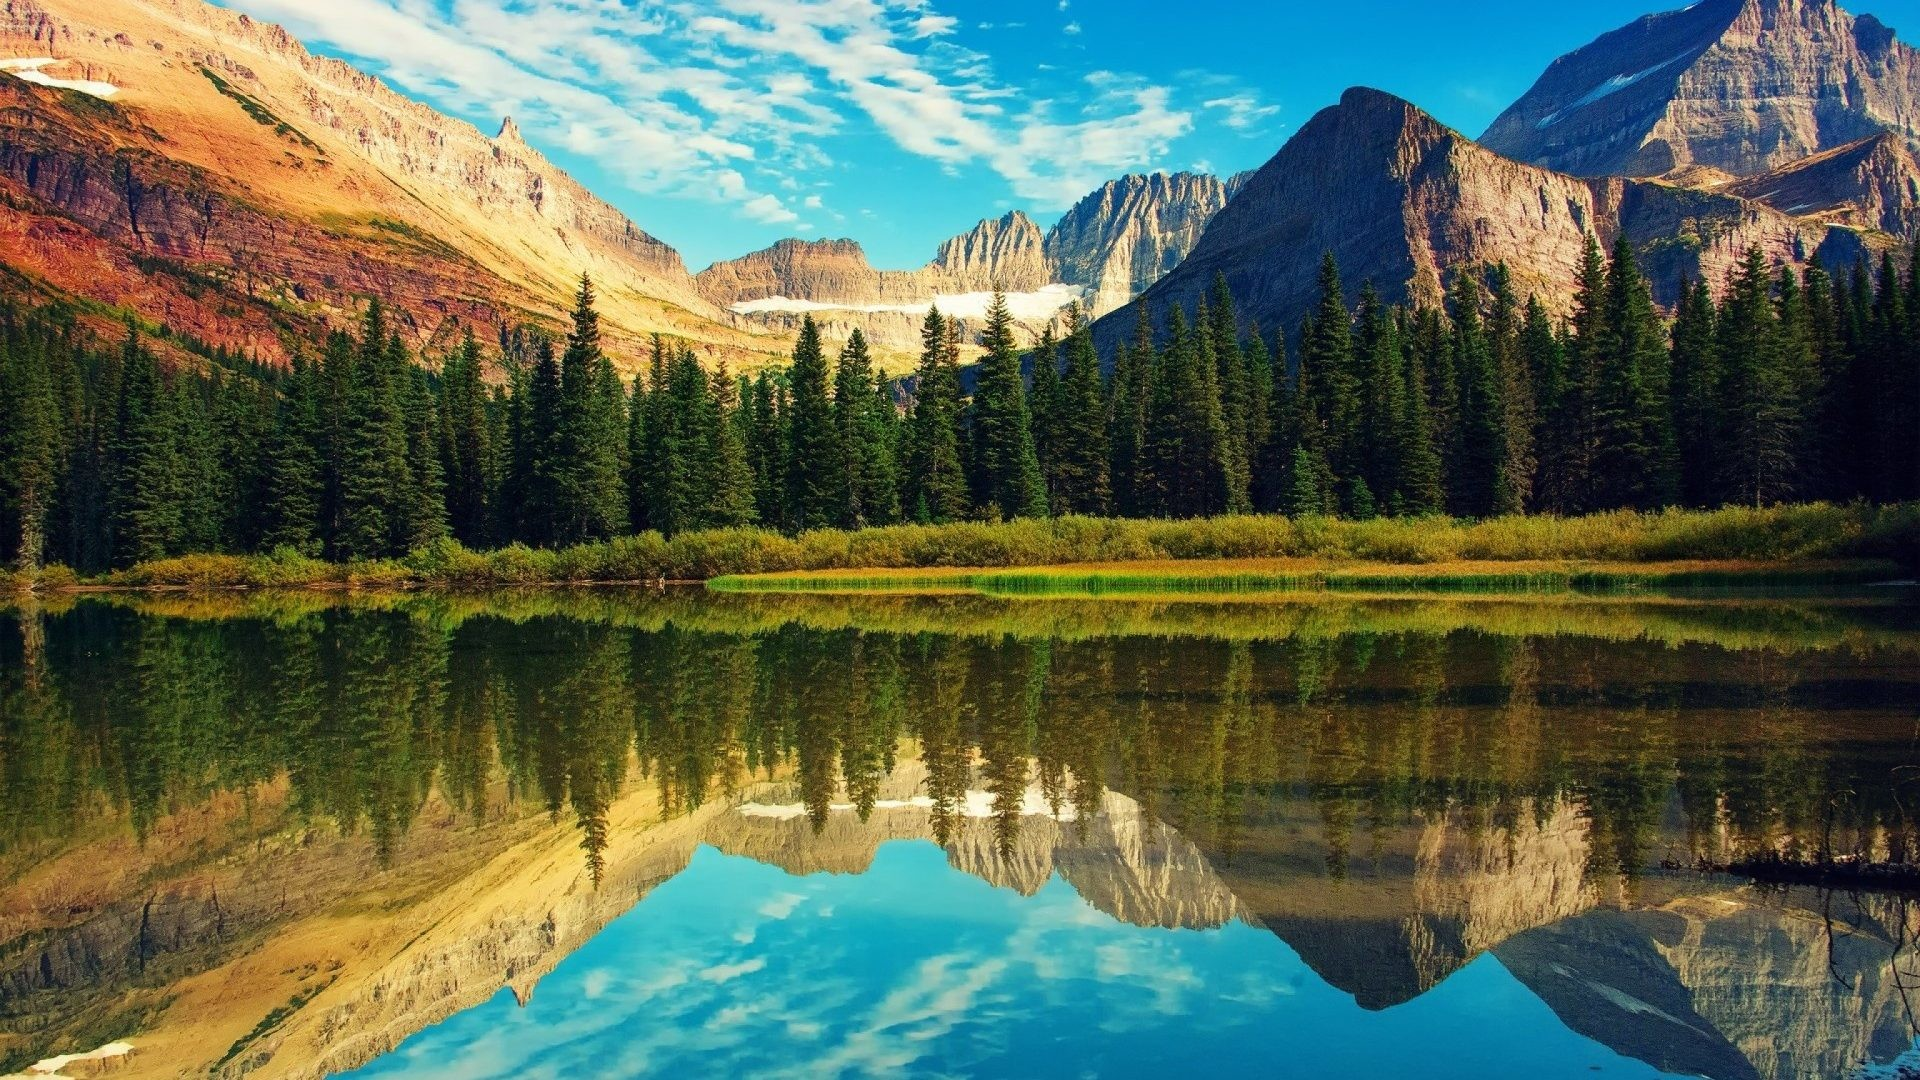 1920x1080 Montana Forests Lake National Reflection Mountains Glacier Park Usa Spring  Desktop Wallpaper